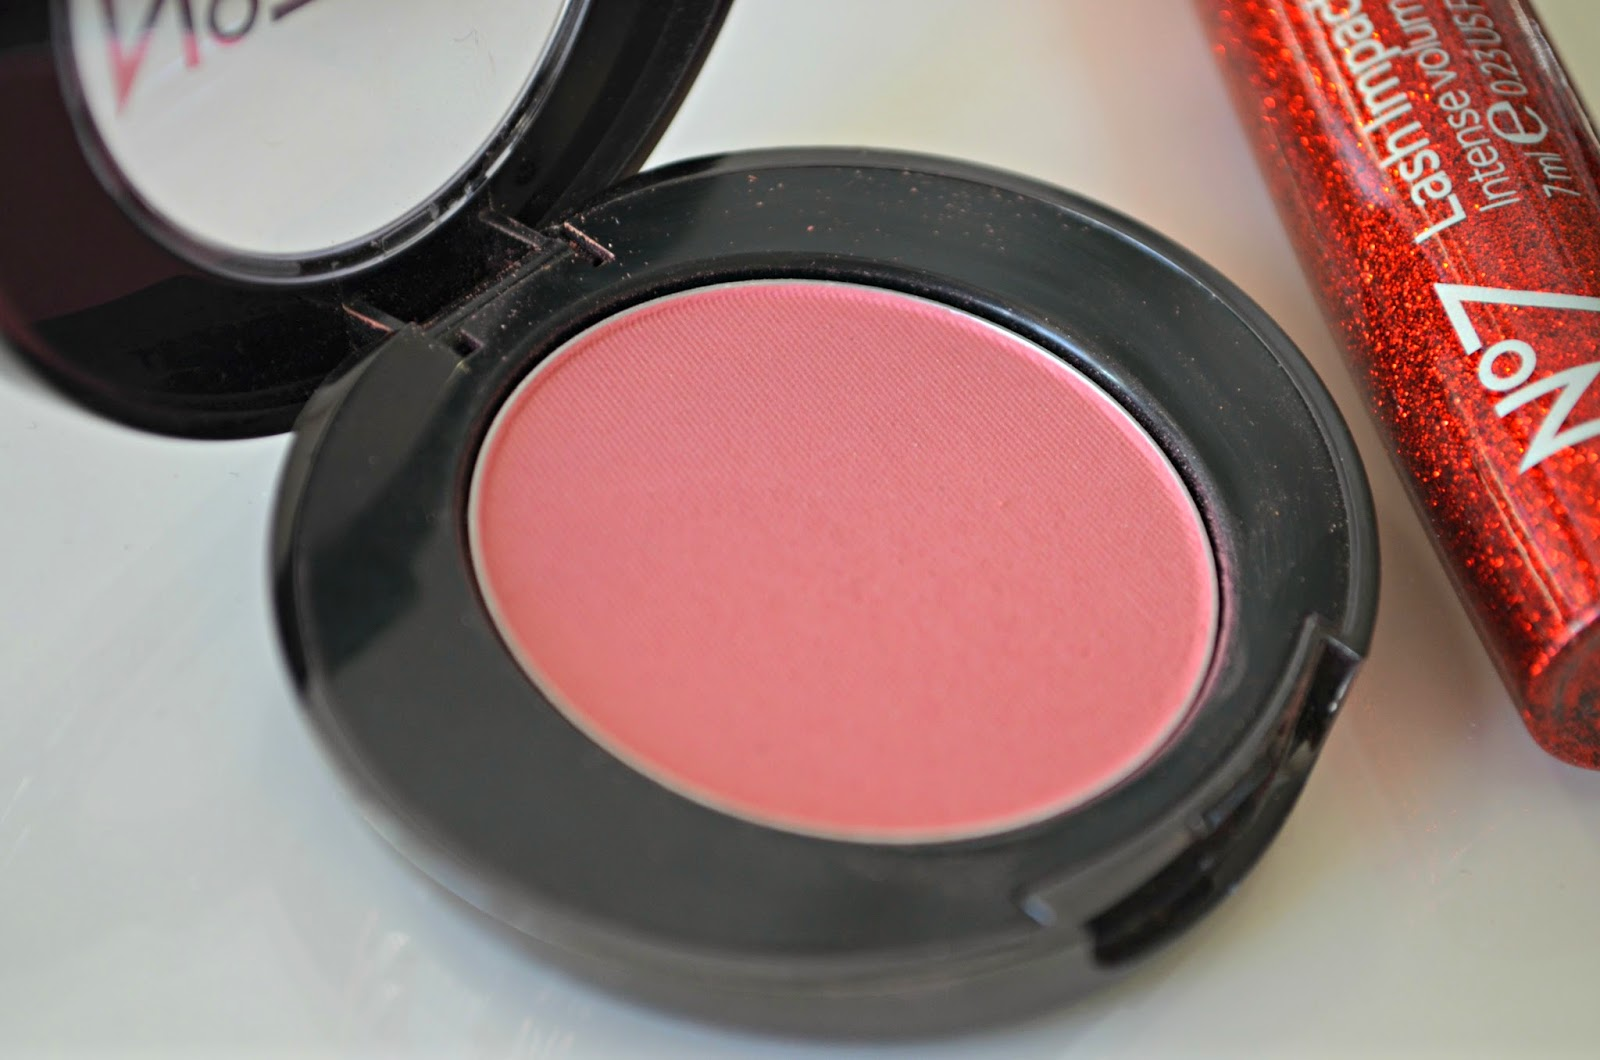 no 7 Natural Blush Tint Powder in Coral Flush